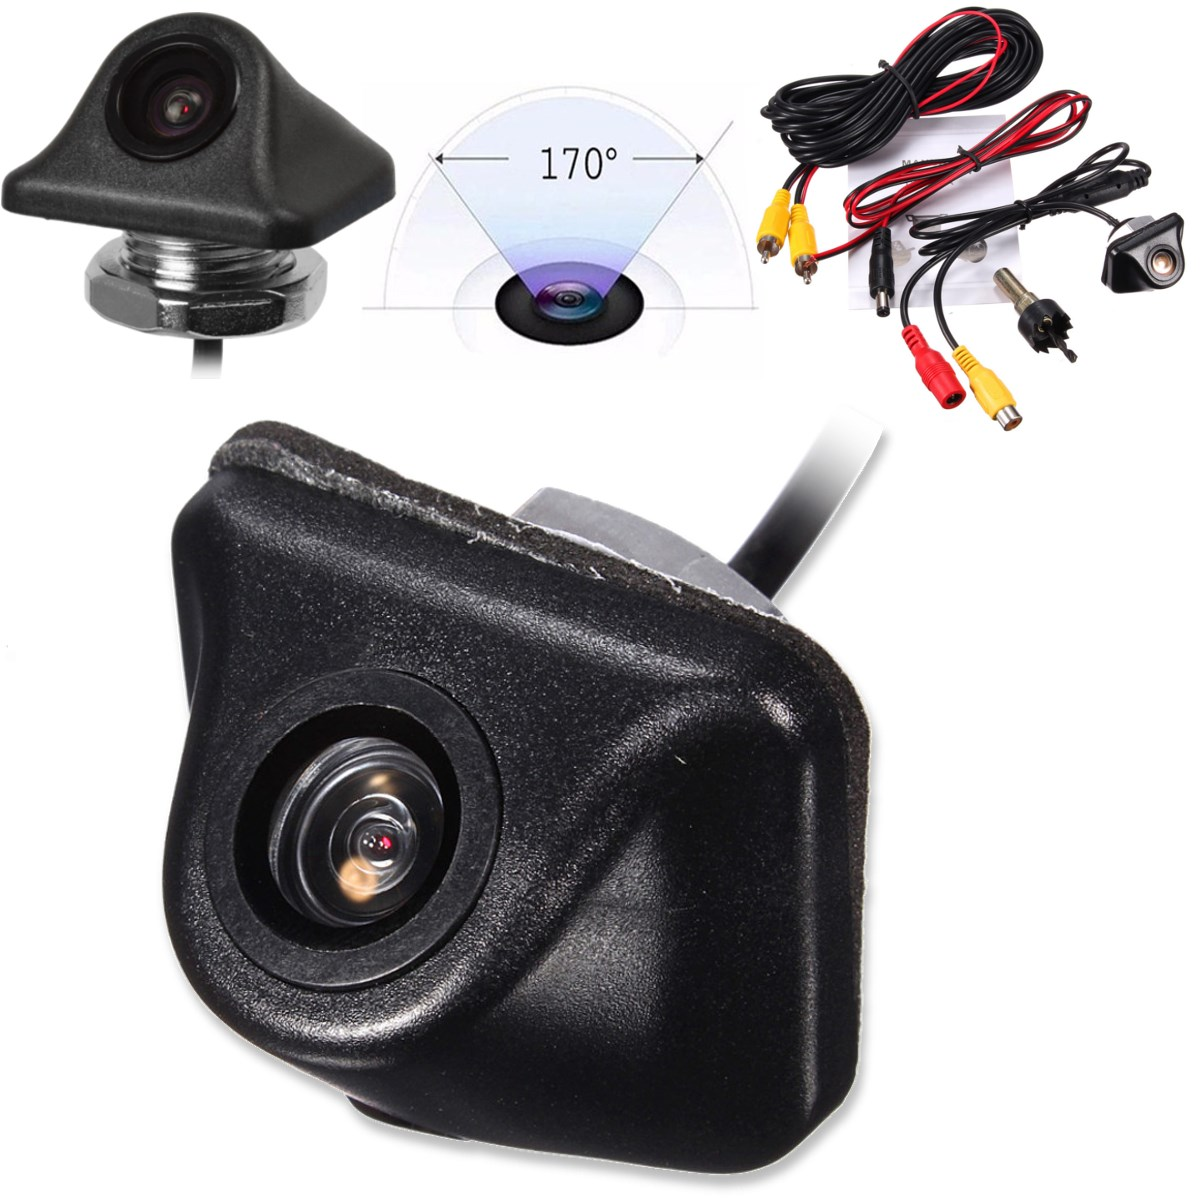 Universal HD CCD Car Rearview Camera Back Up 170 Degree Backup Parking Reverse Camera For Monitor GPS Rear View CameraUniversal HD CCD Car Rearview Camera Back Up 170 Degree Backup Parking Reverse Camera For Monitor GPS Rear View Camera